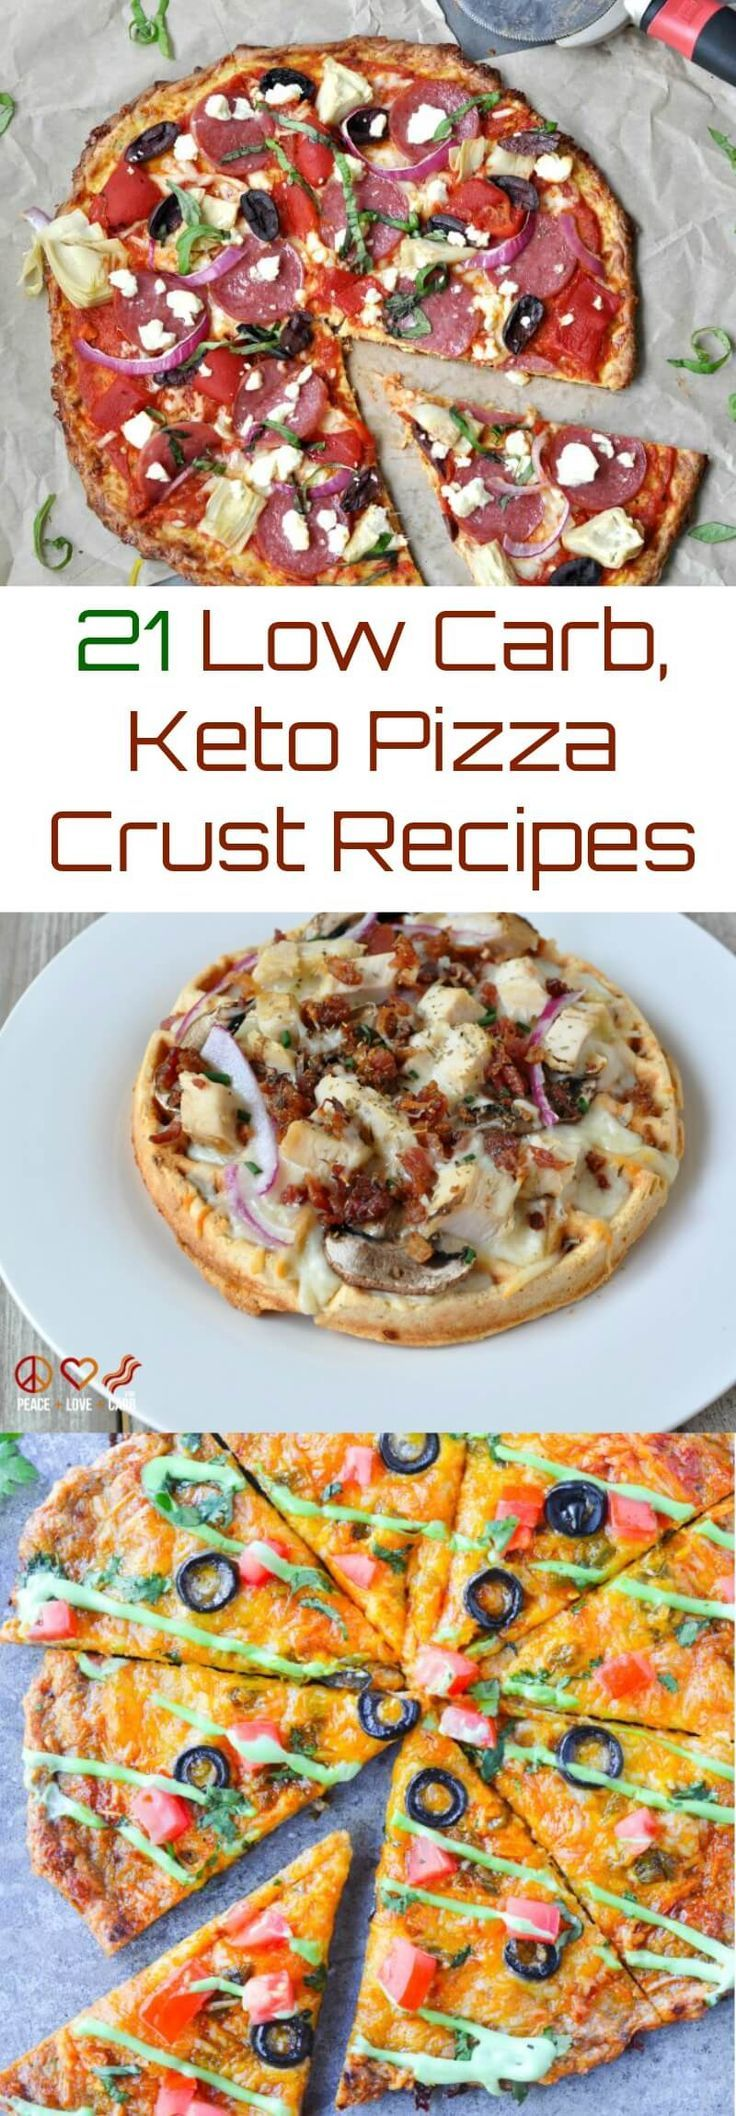 21 Low Carb, Keto Pizza Crust Recipes | Peace Love and Low Carb via @PeaceLoveLoCarb